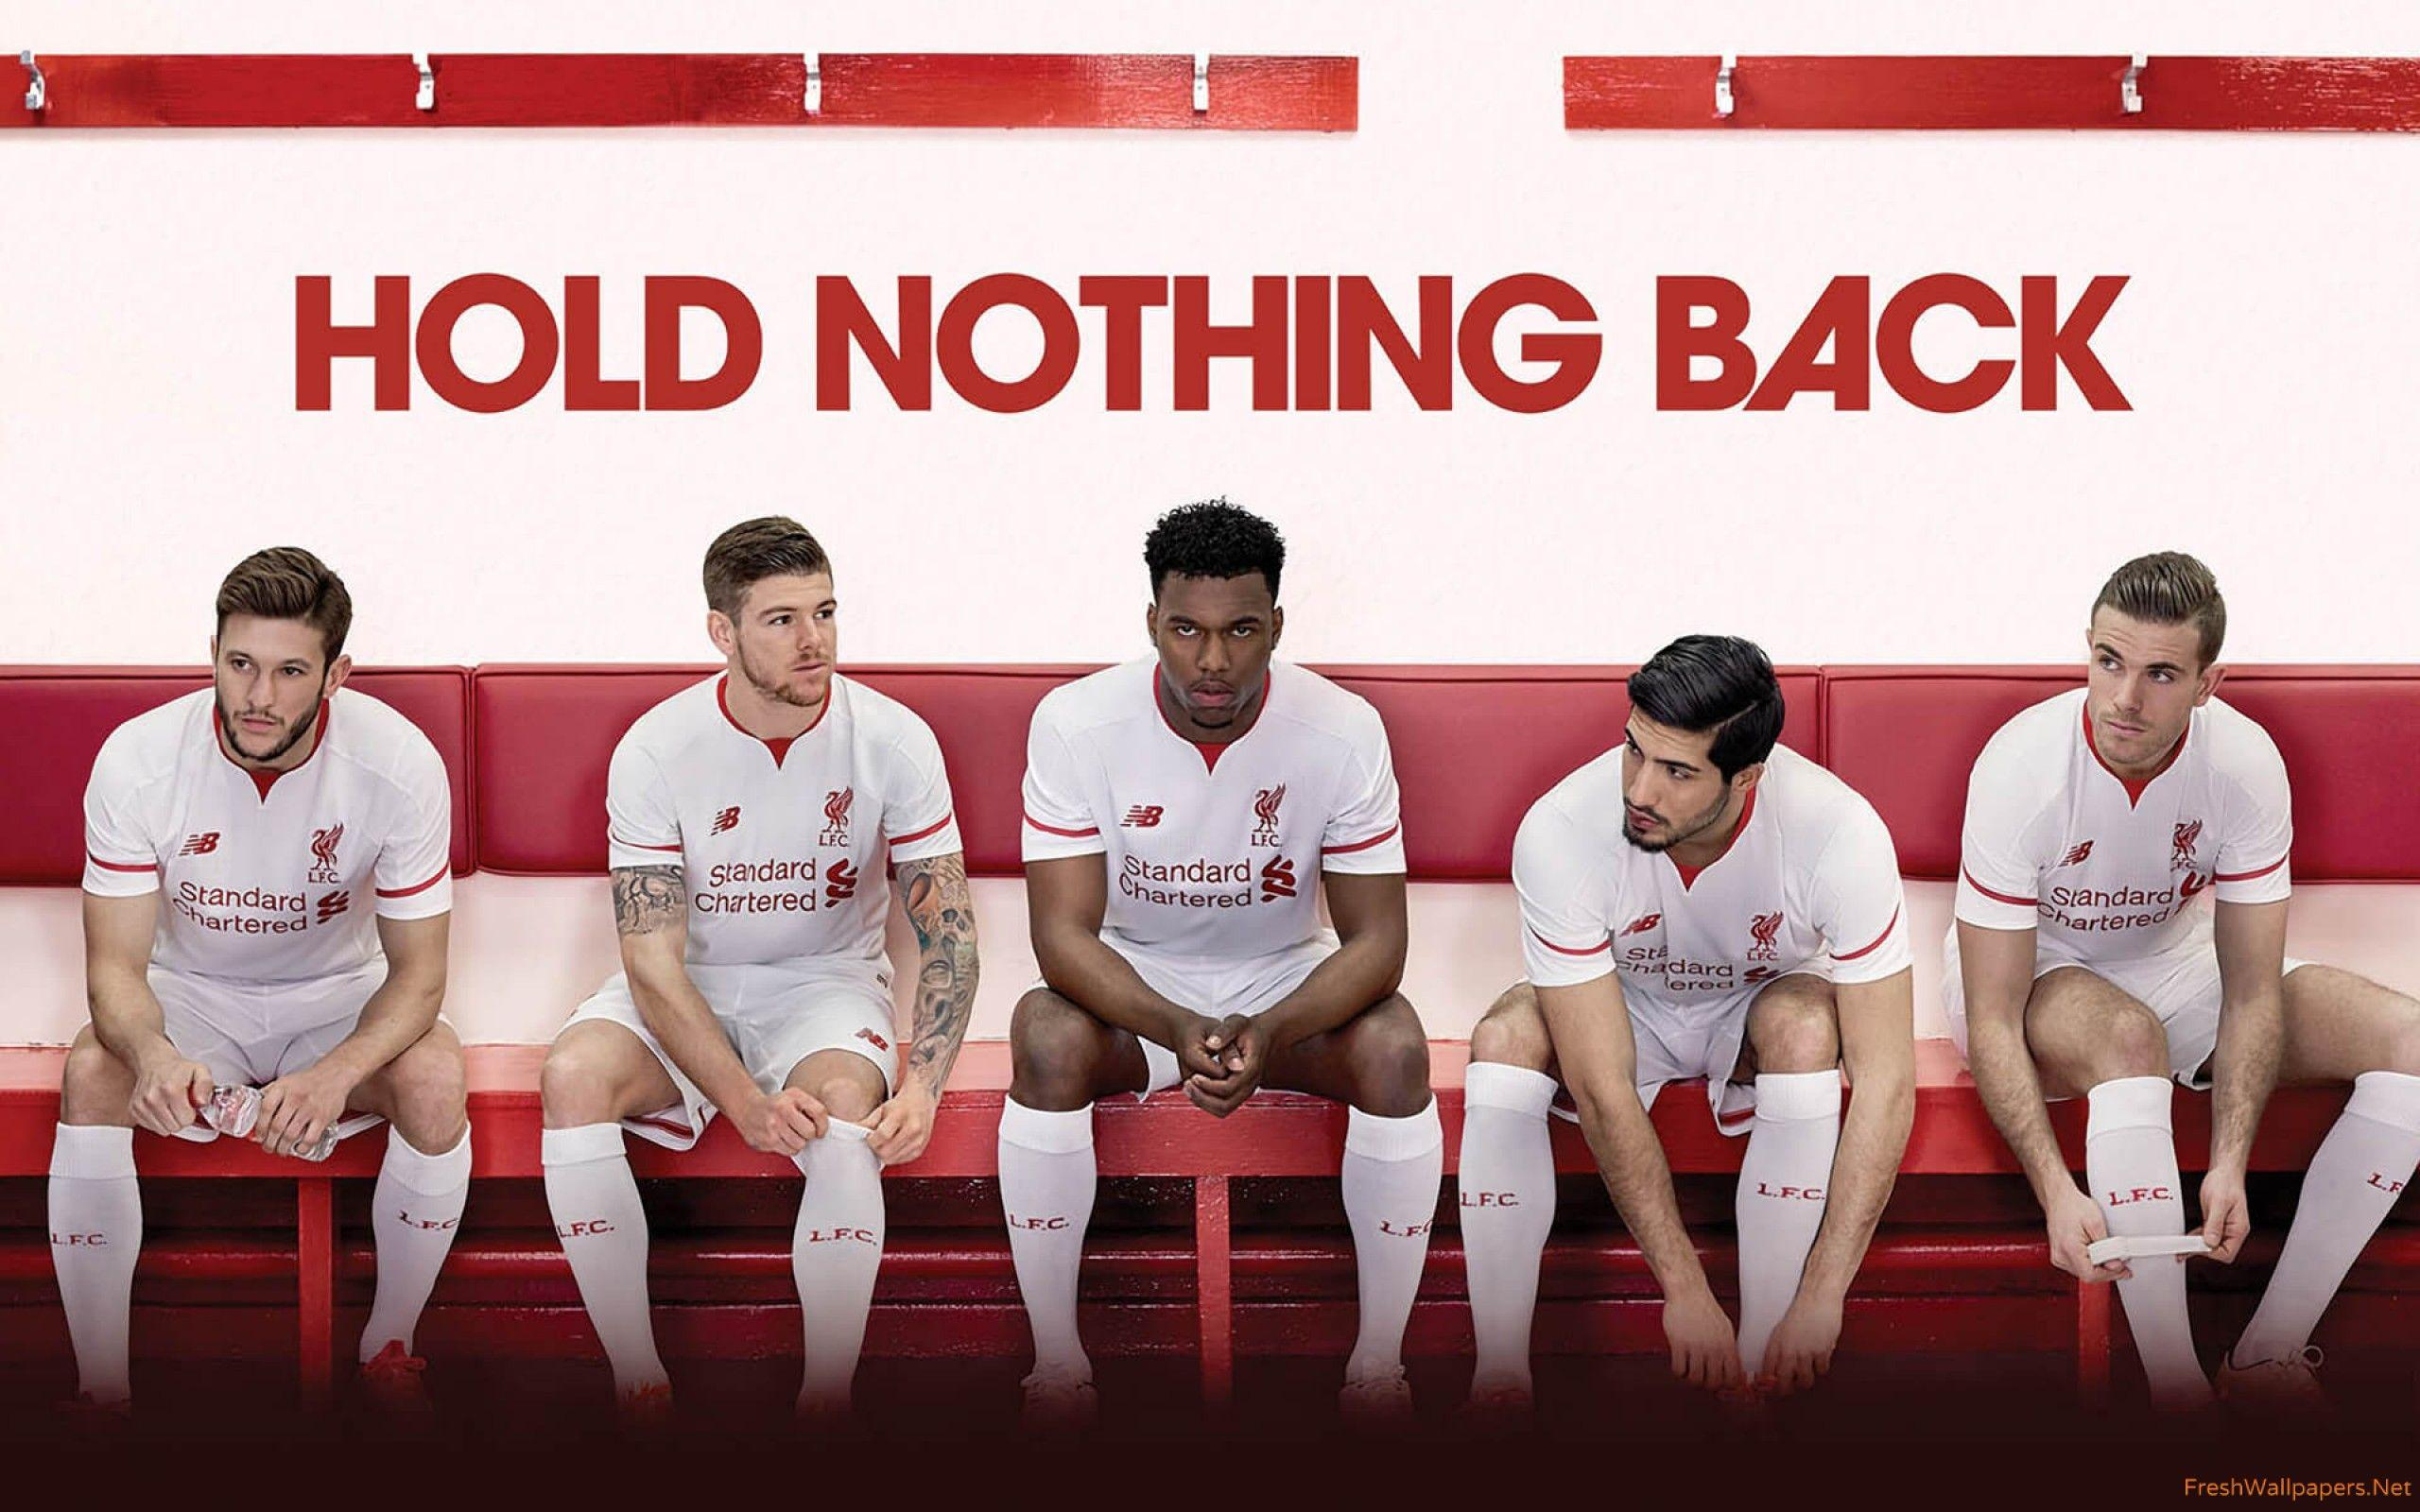 New balance wallpapers wallpaper cave - Lfc pictures free ...